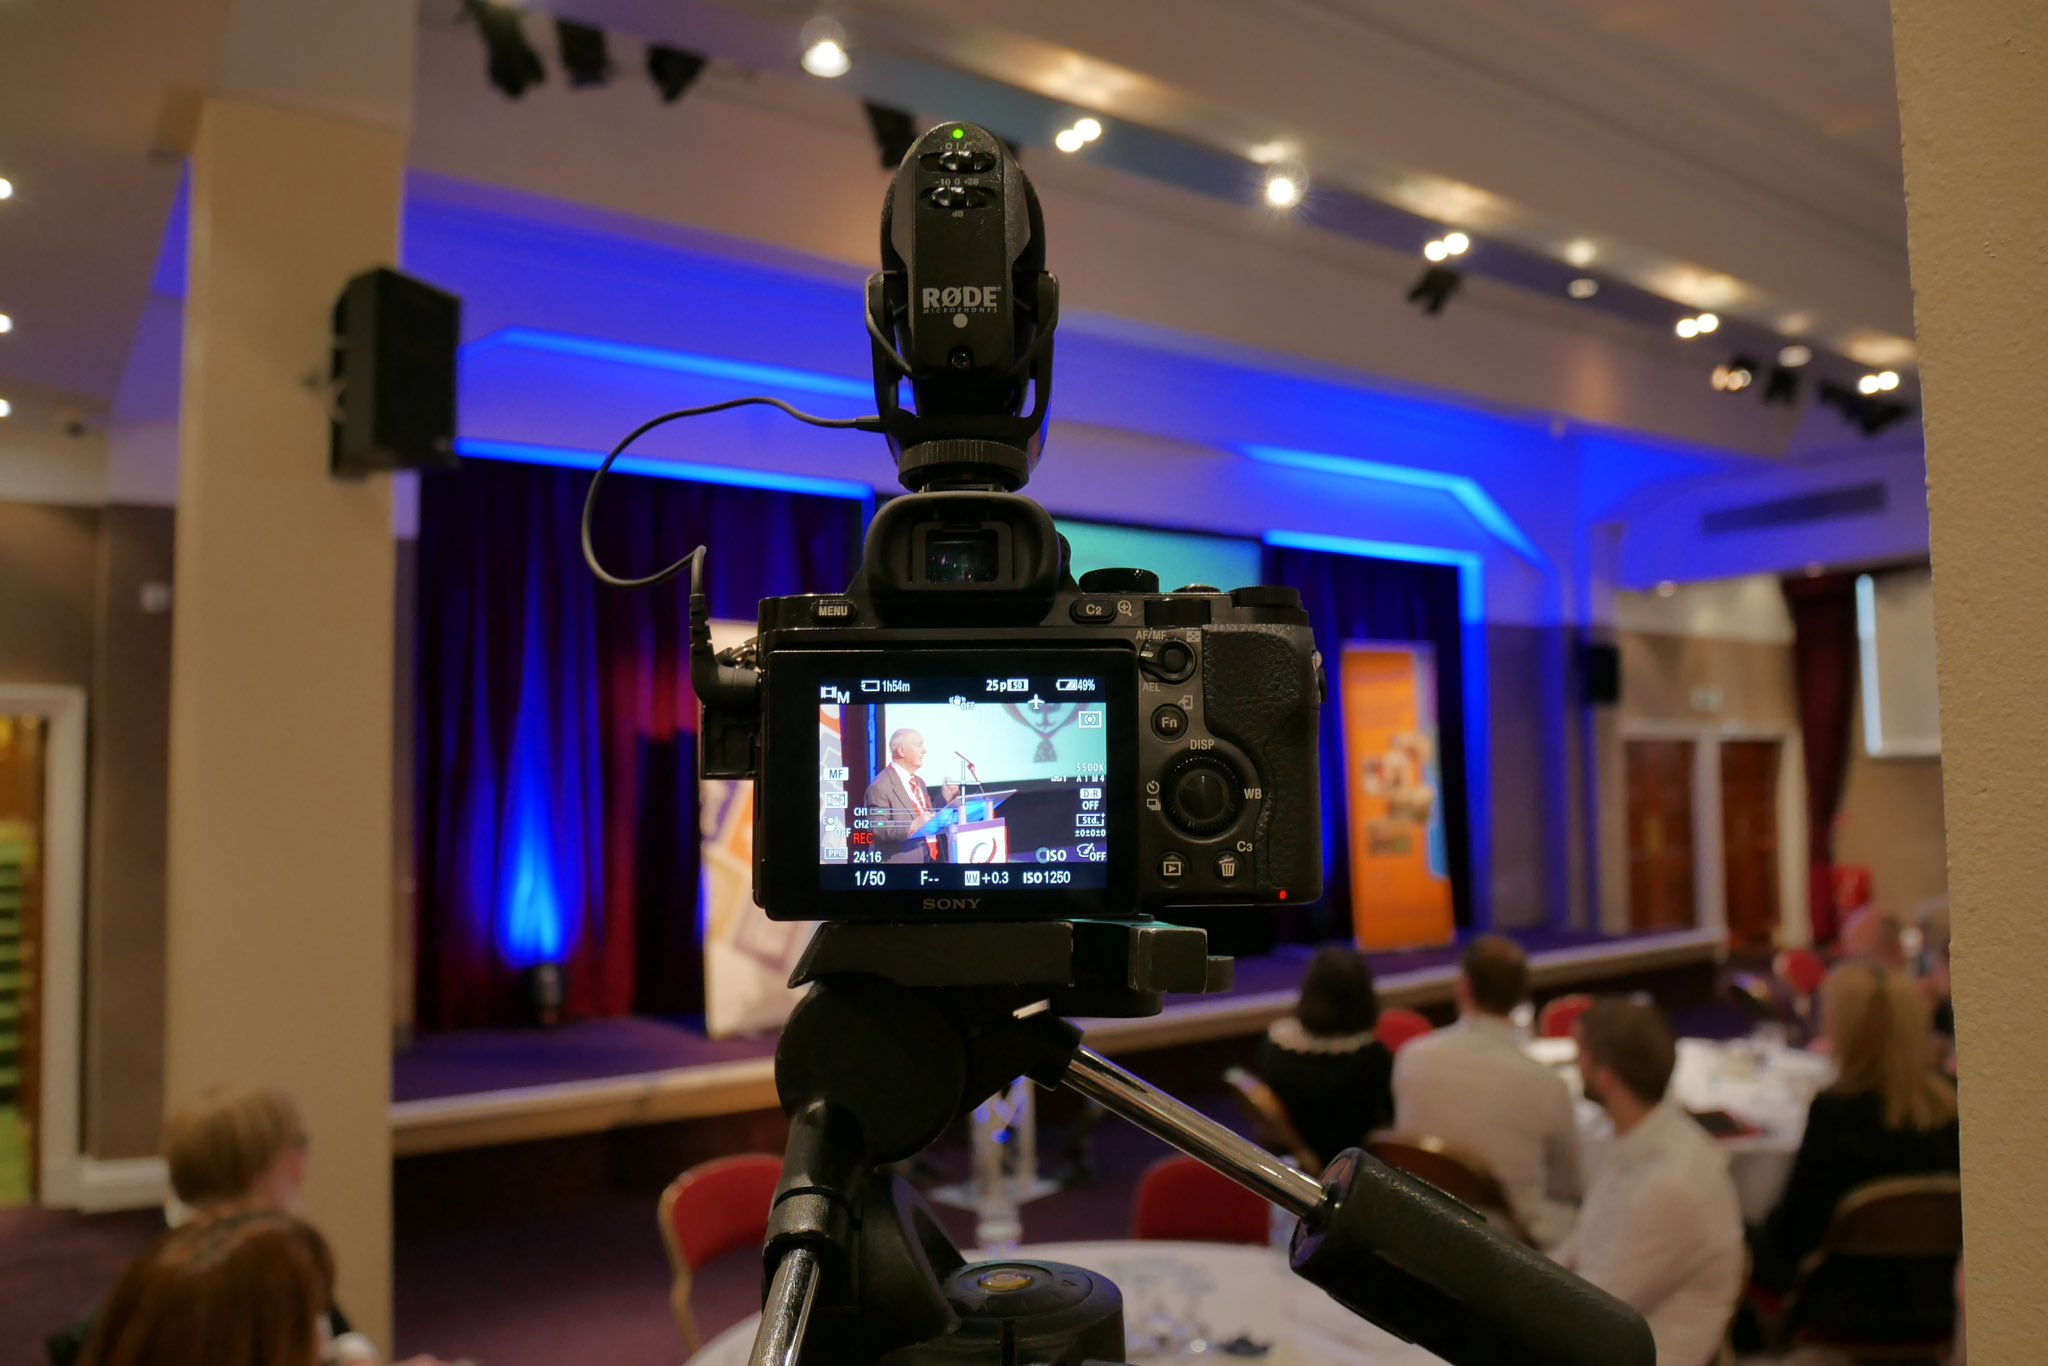 Interesting morning filming @SLIC1991 conference on Scottish libraries strategy for 2015 to 2020 #scotlibstrat https://t.co/dp2VM2dqKc